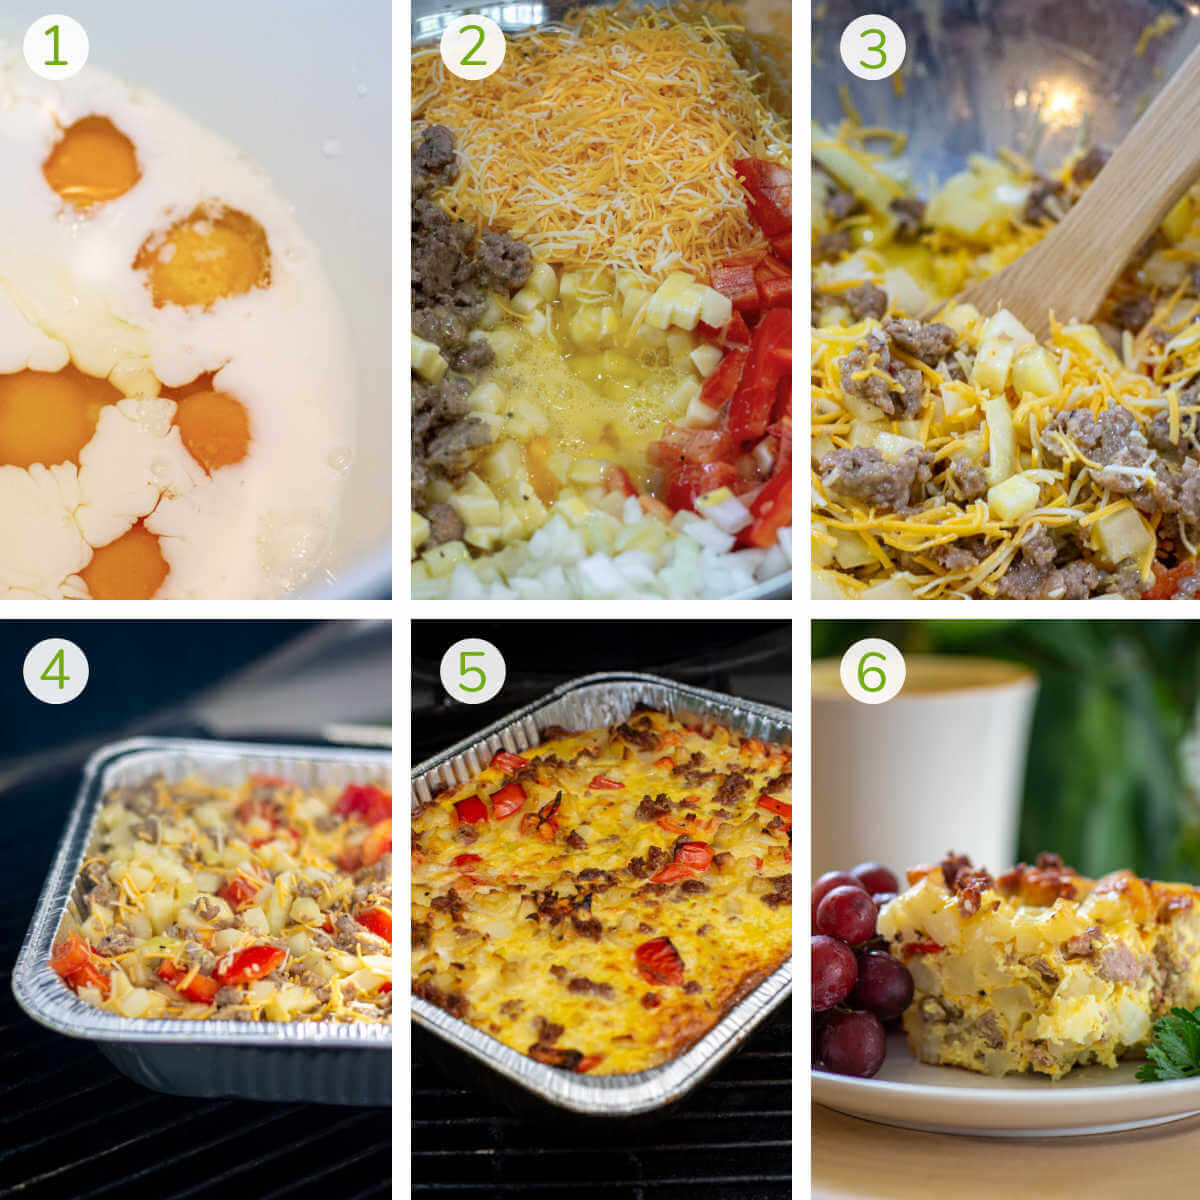 six process photos showing combining the ingredients, grilling and then serving.